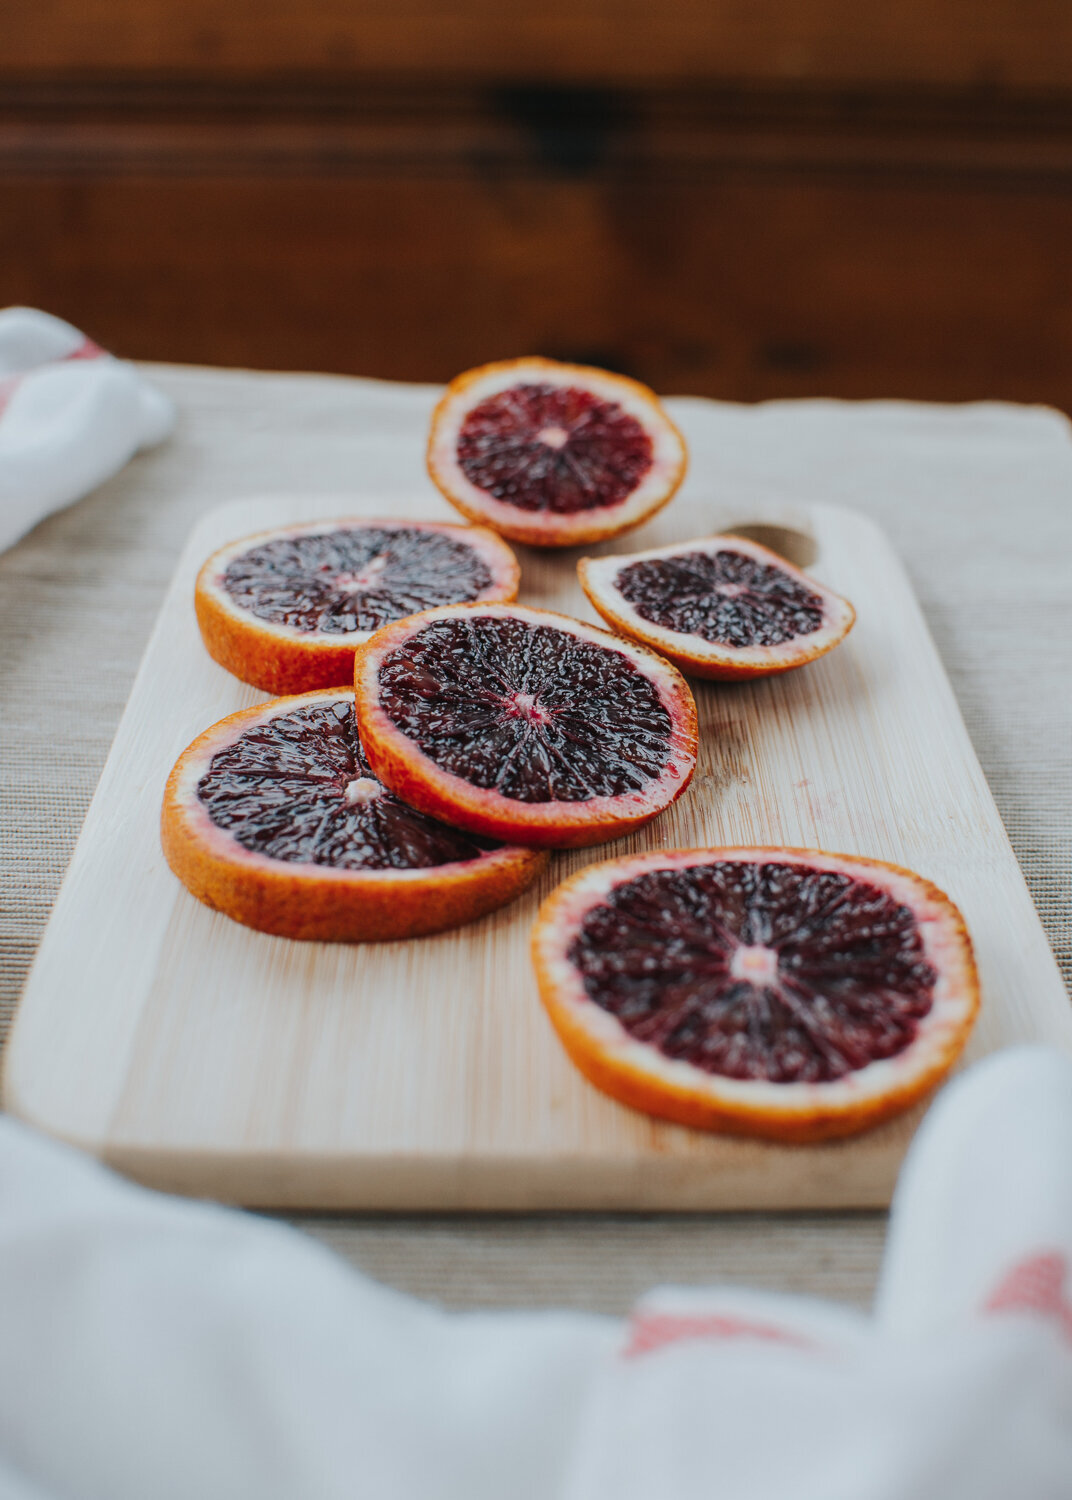 blood oranges sliced on wooden cutting board